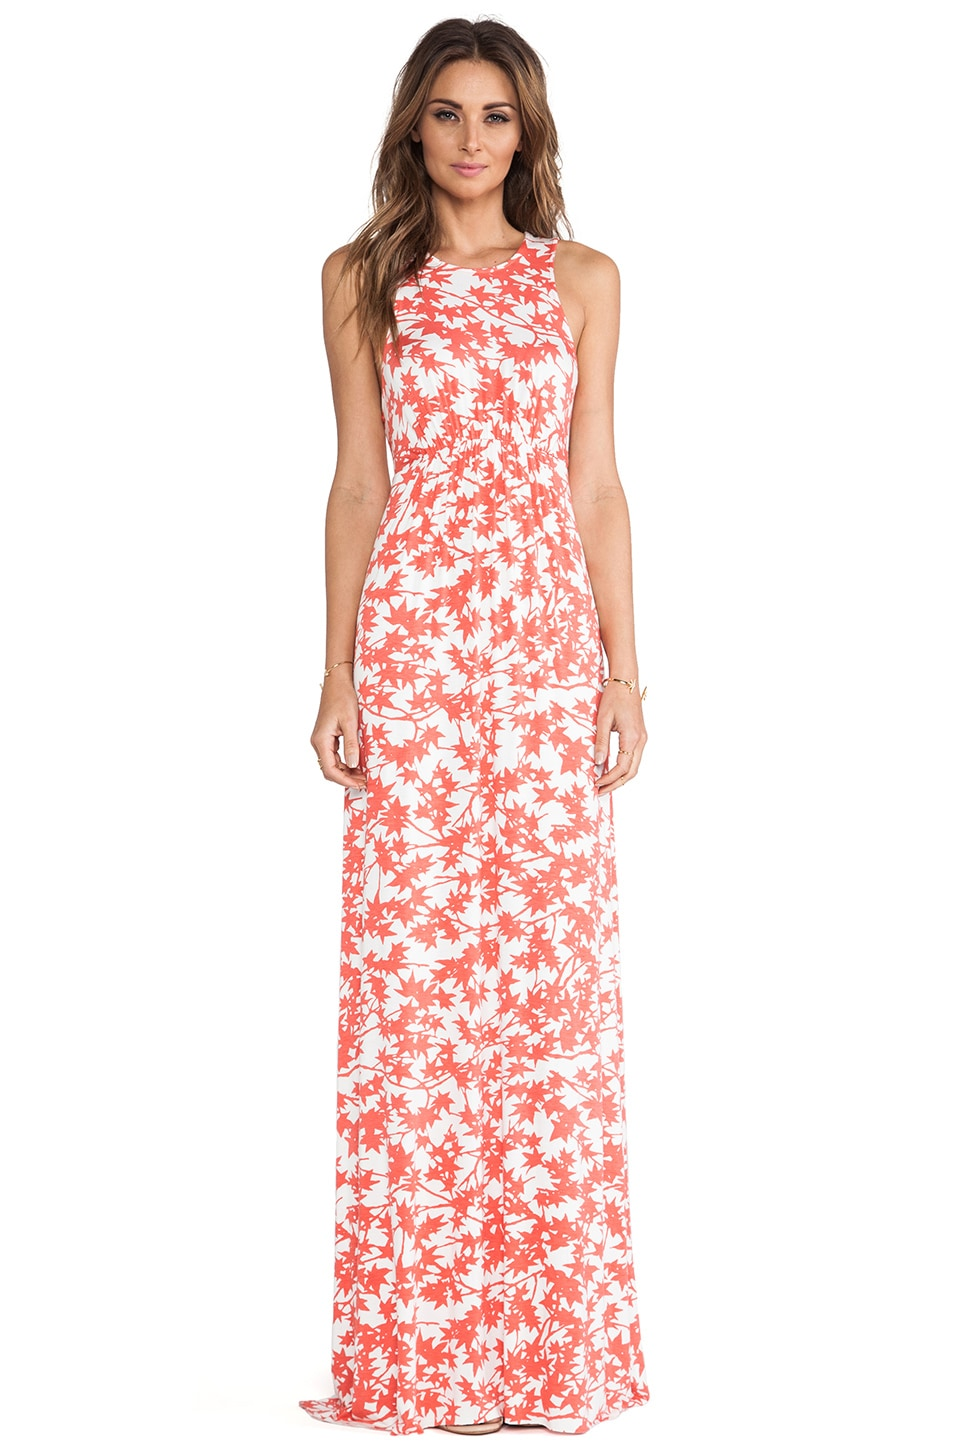 Rachel Pally Phillipa Printed Dress in Persimmon Maple